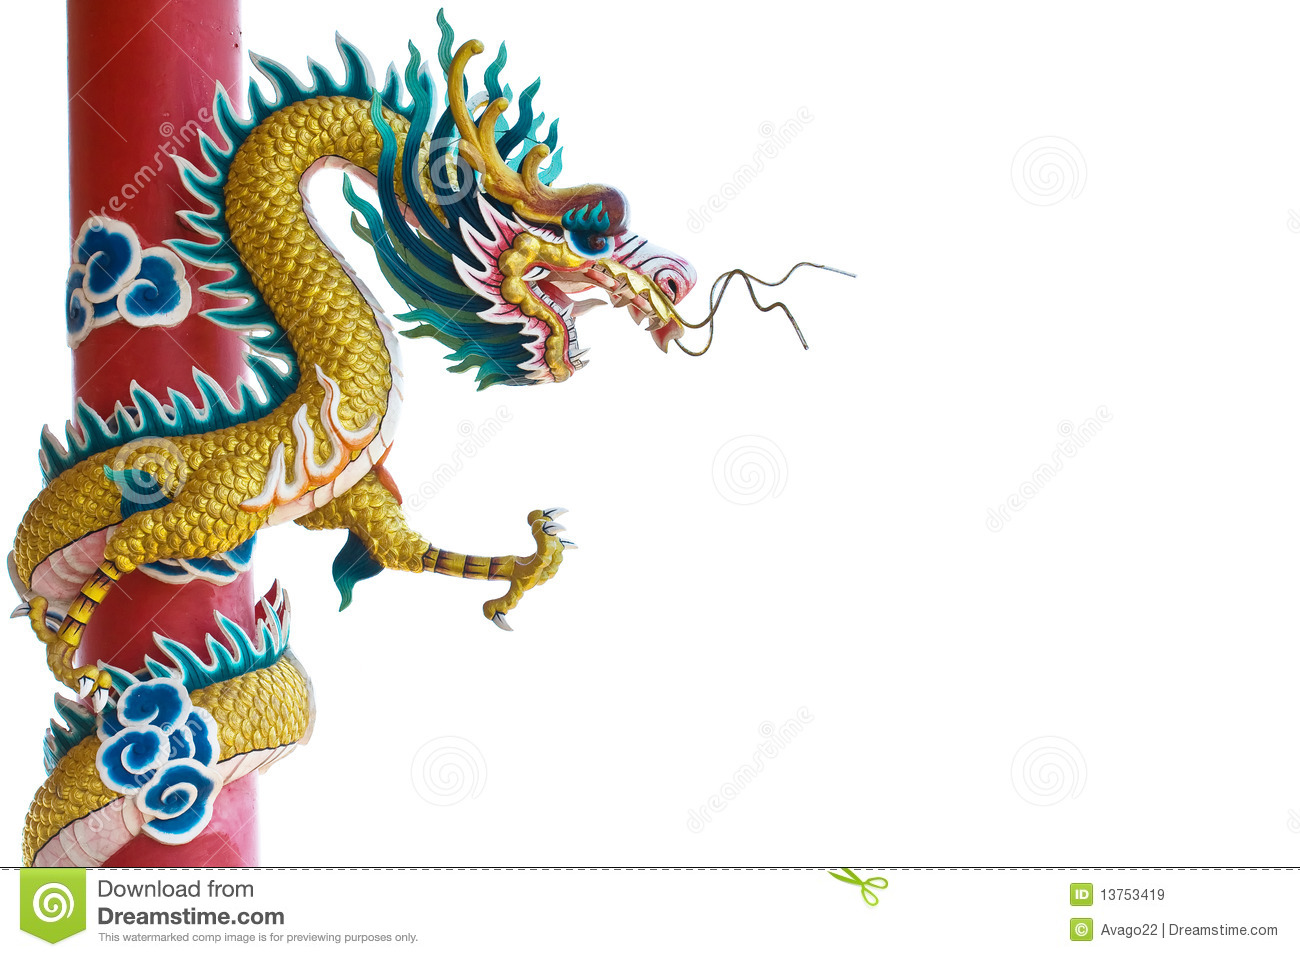 Chinese dragon on white backgrounds.